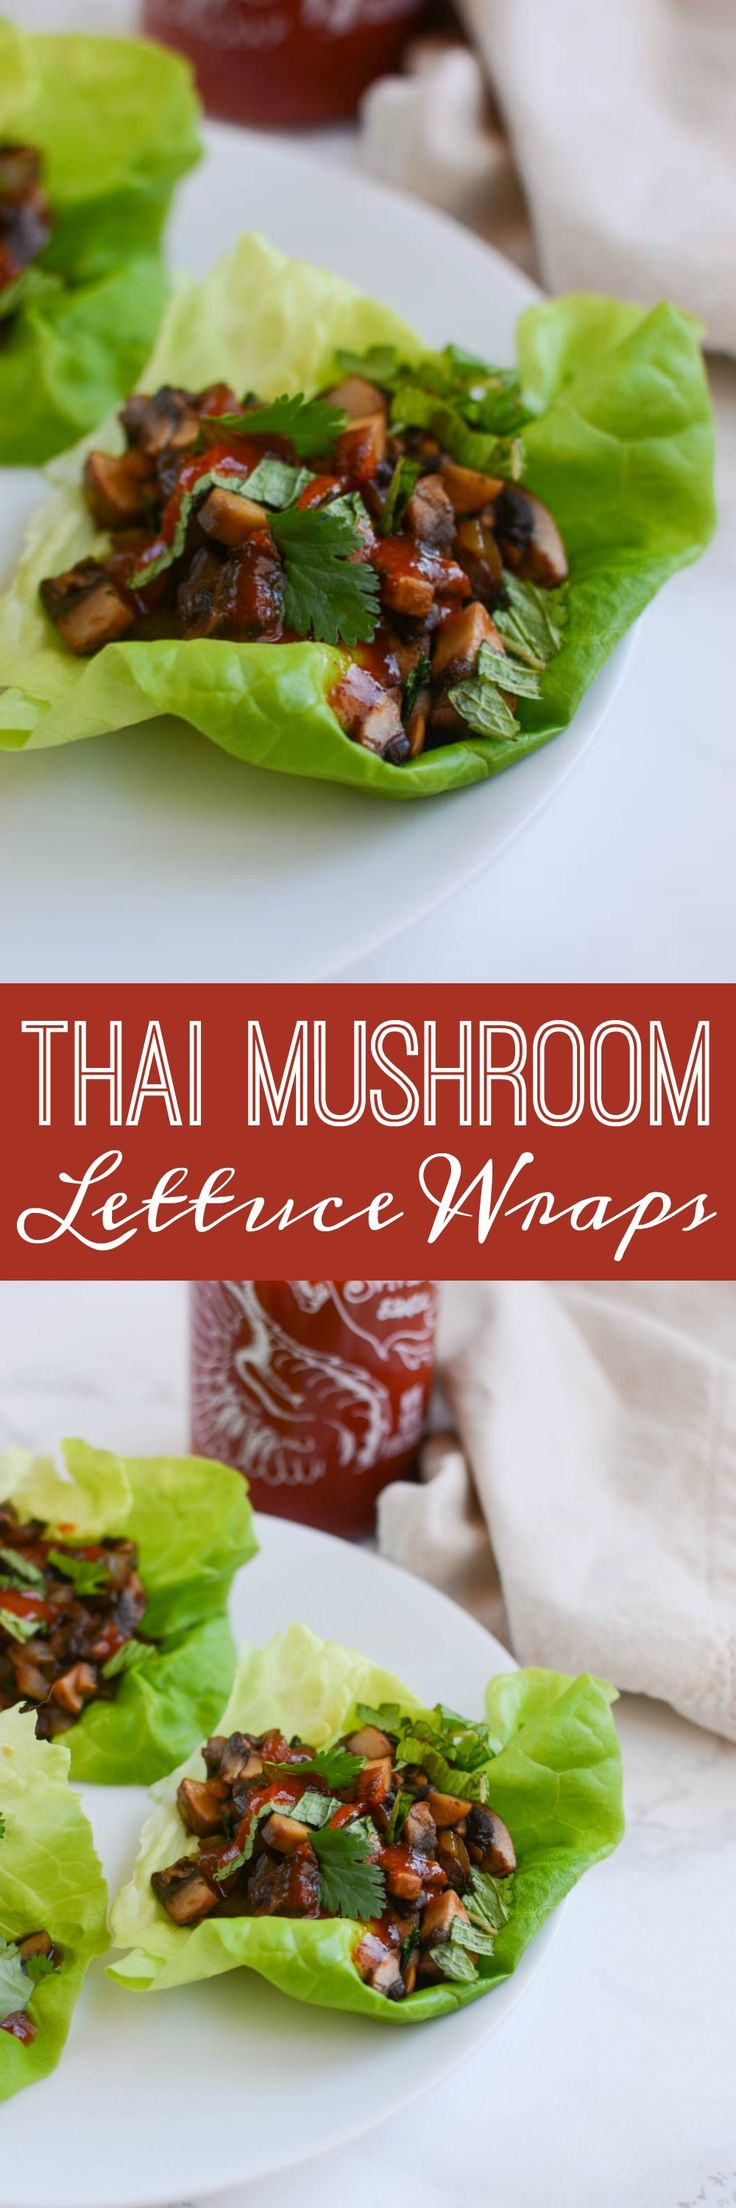 Thai Mushroom Lettuce Wraps - delicious meatless lettuce wraps! Healthy, quick, and cheap!: